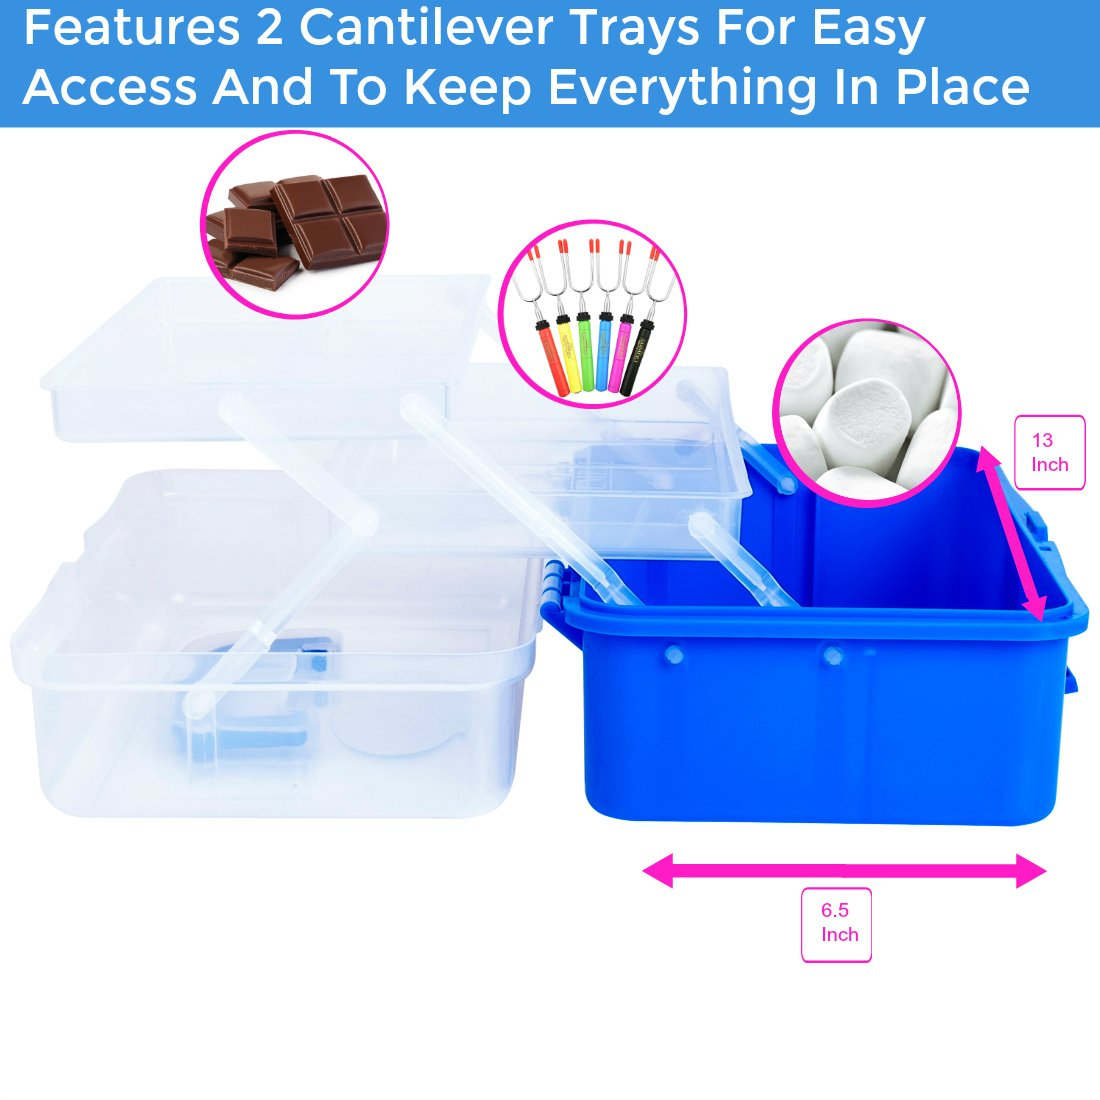 SUMPRI Smores Caddy with Two Folding Trays -Smore Box That Keeps Your Marshmallow Roasting Sticks/Crackers/Chocolate Bars Organized -Fire Pit Accessories Kit,Campfire Smore Skewers Storage Box (Blue) by SUMPRI (Image #3)